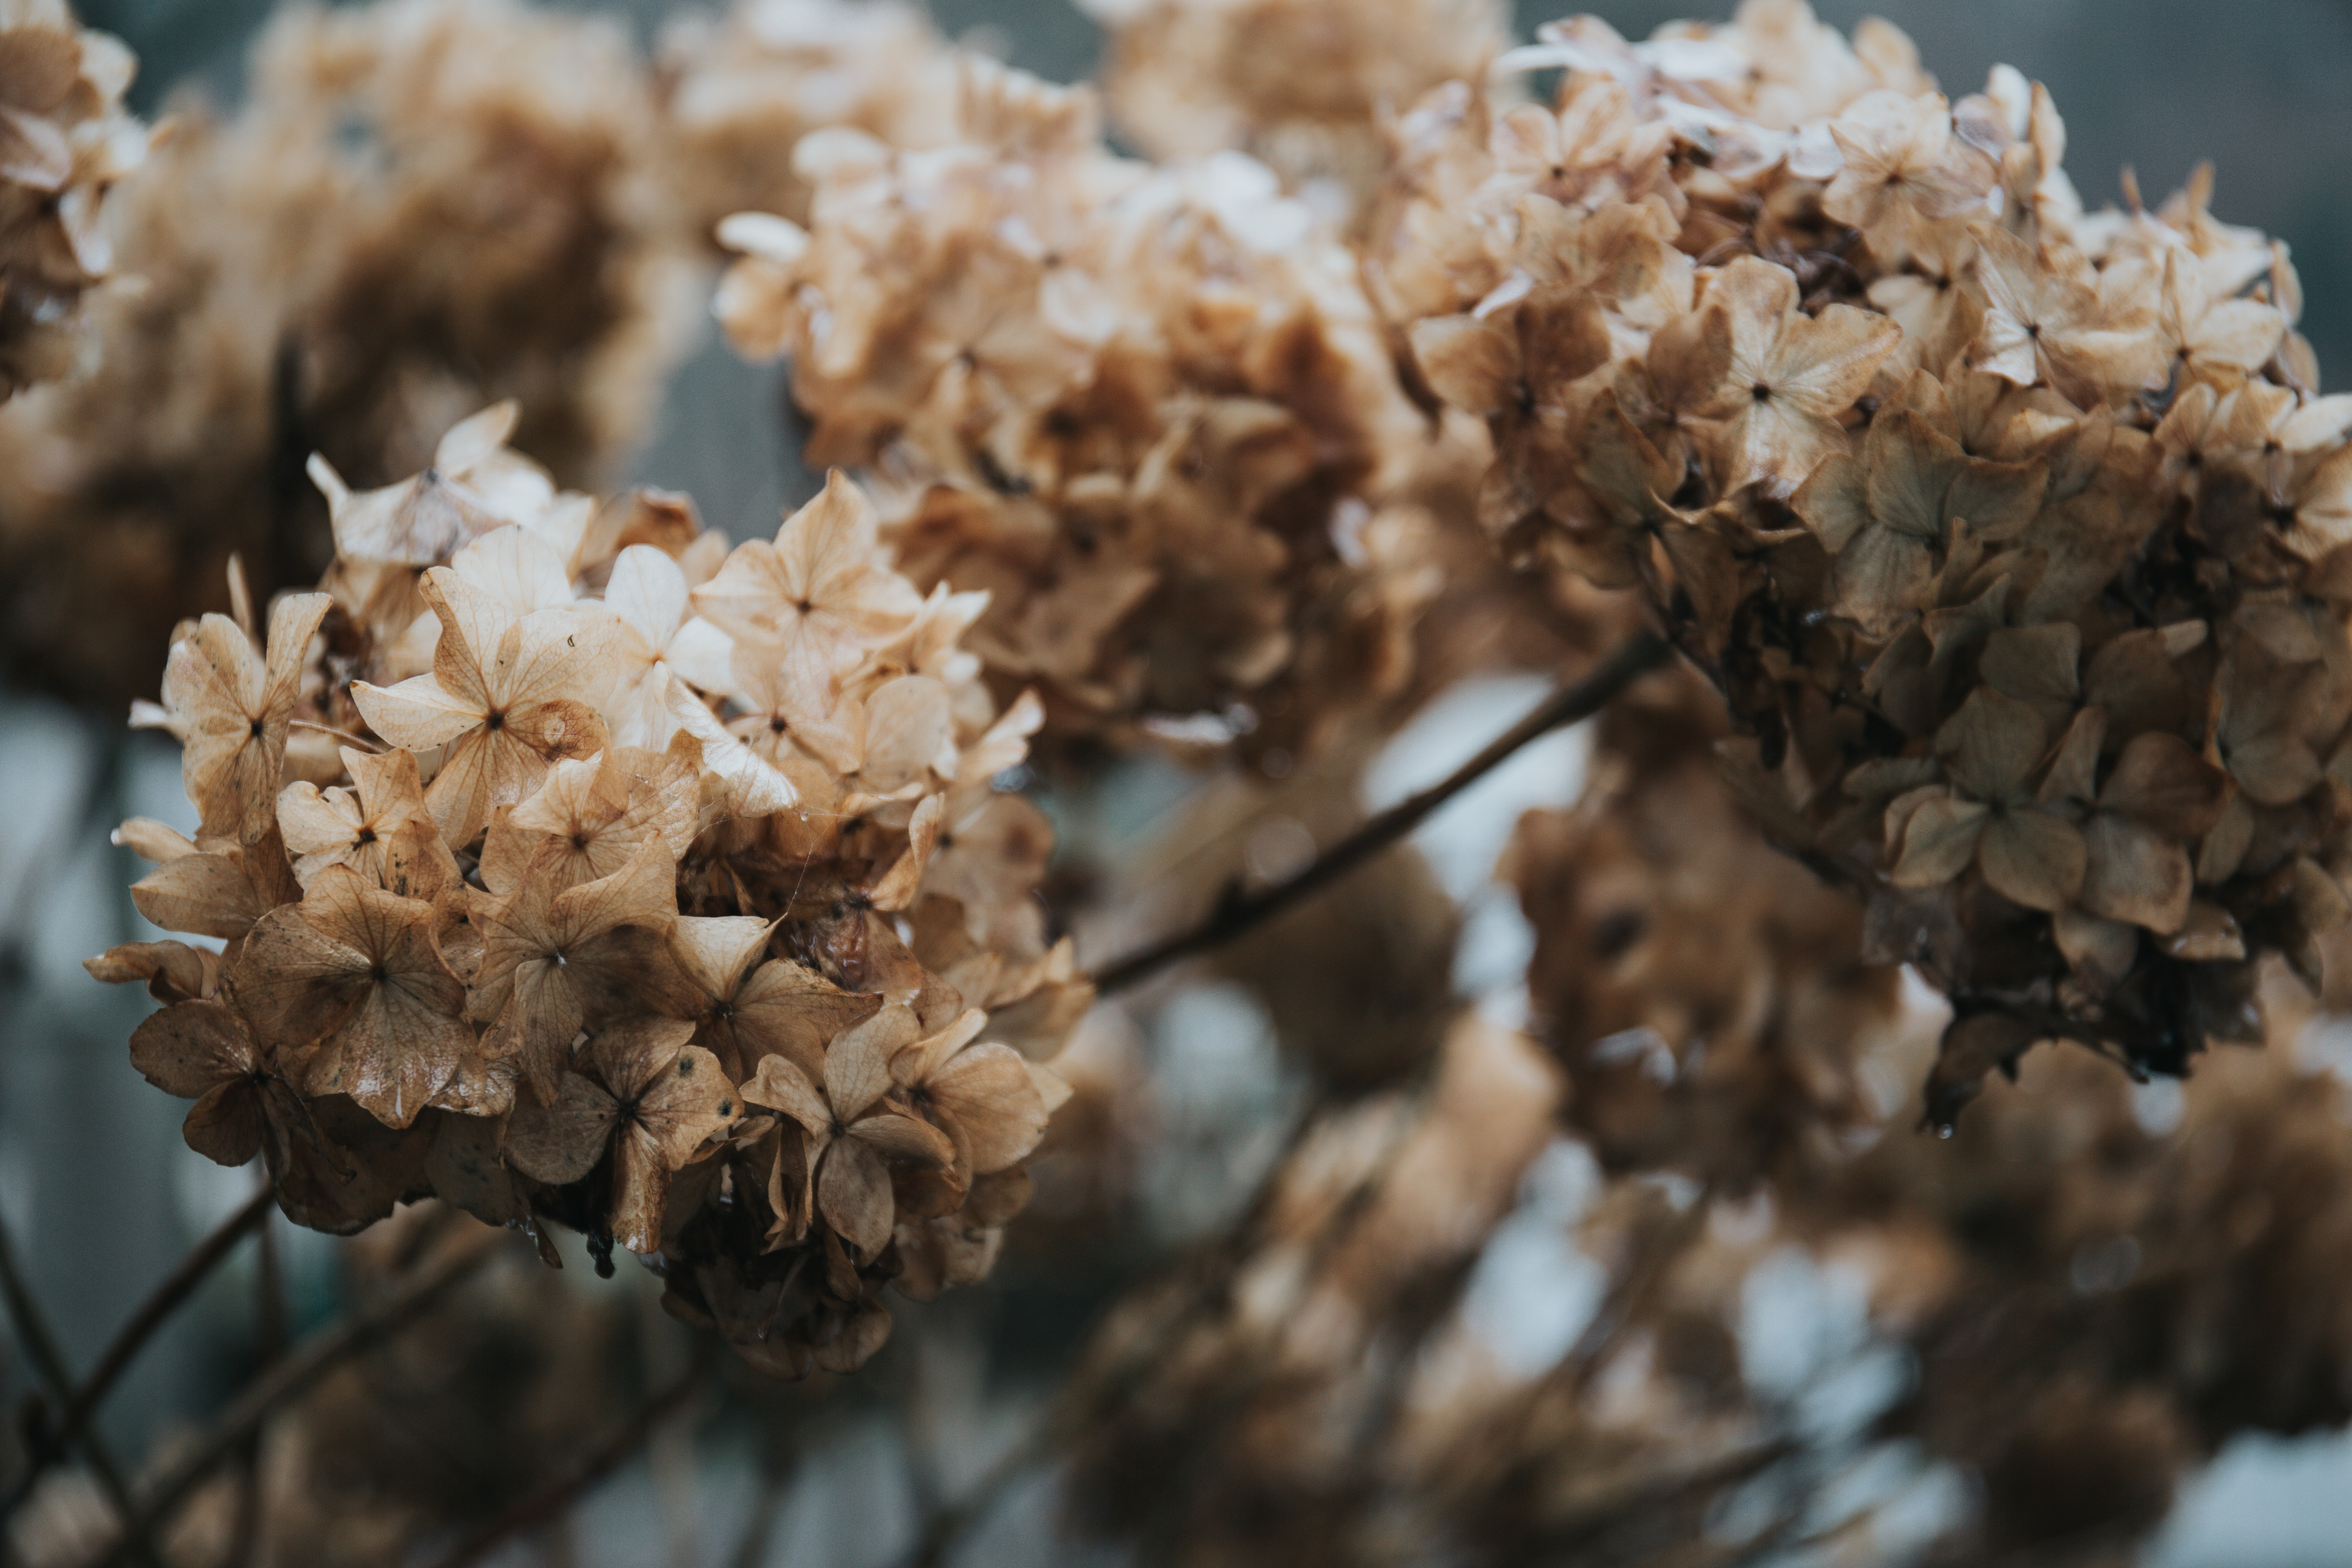 shallow focus photography of brown-and-white flowers